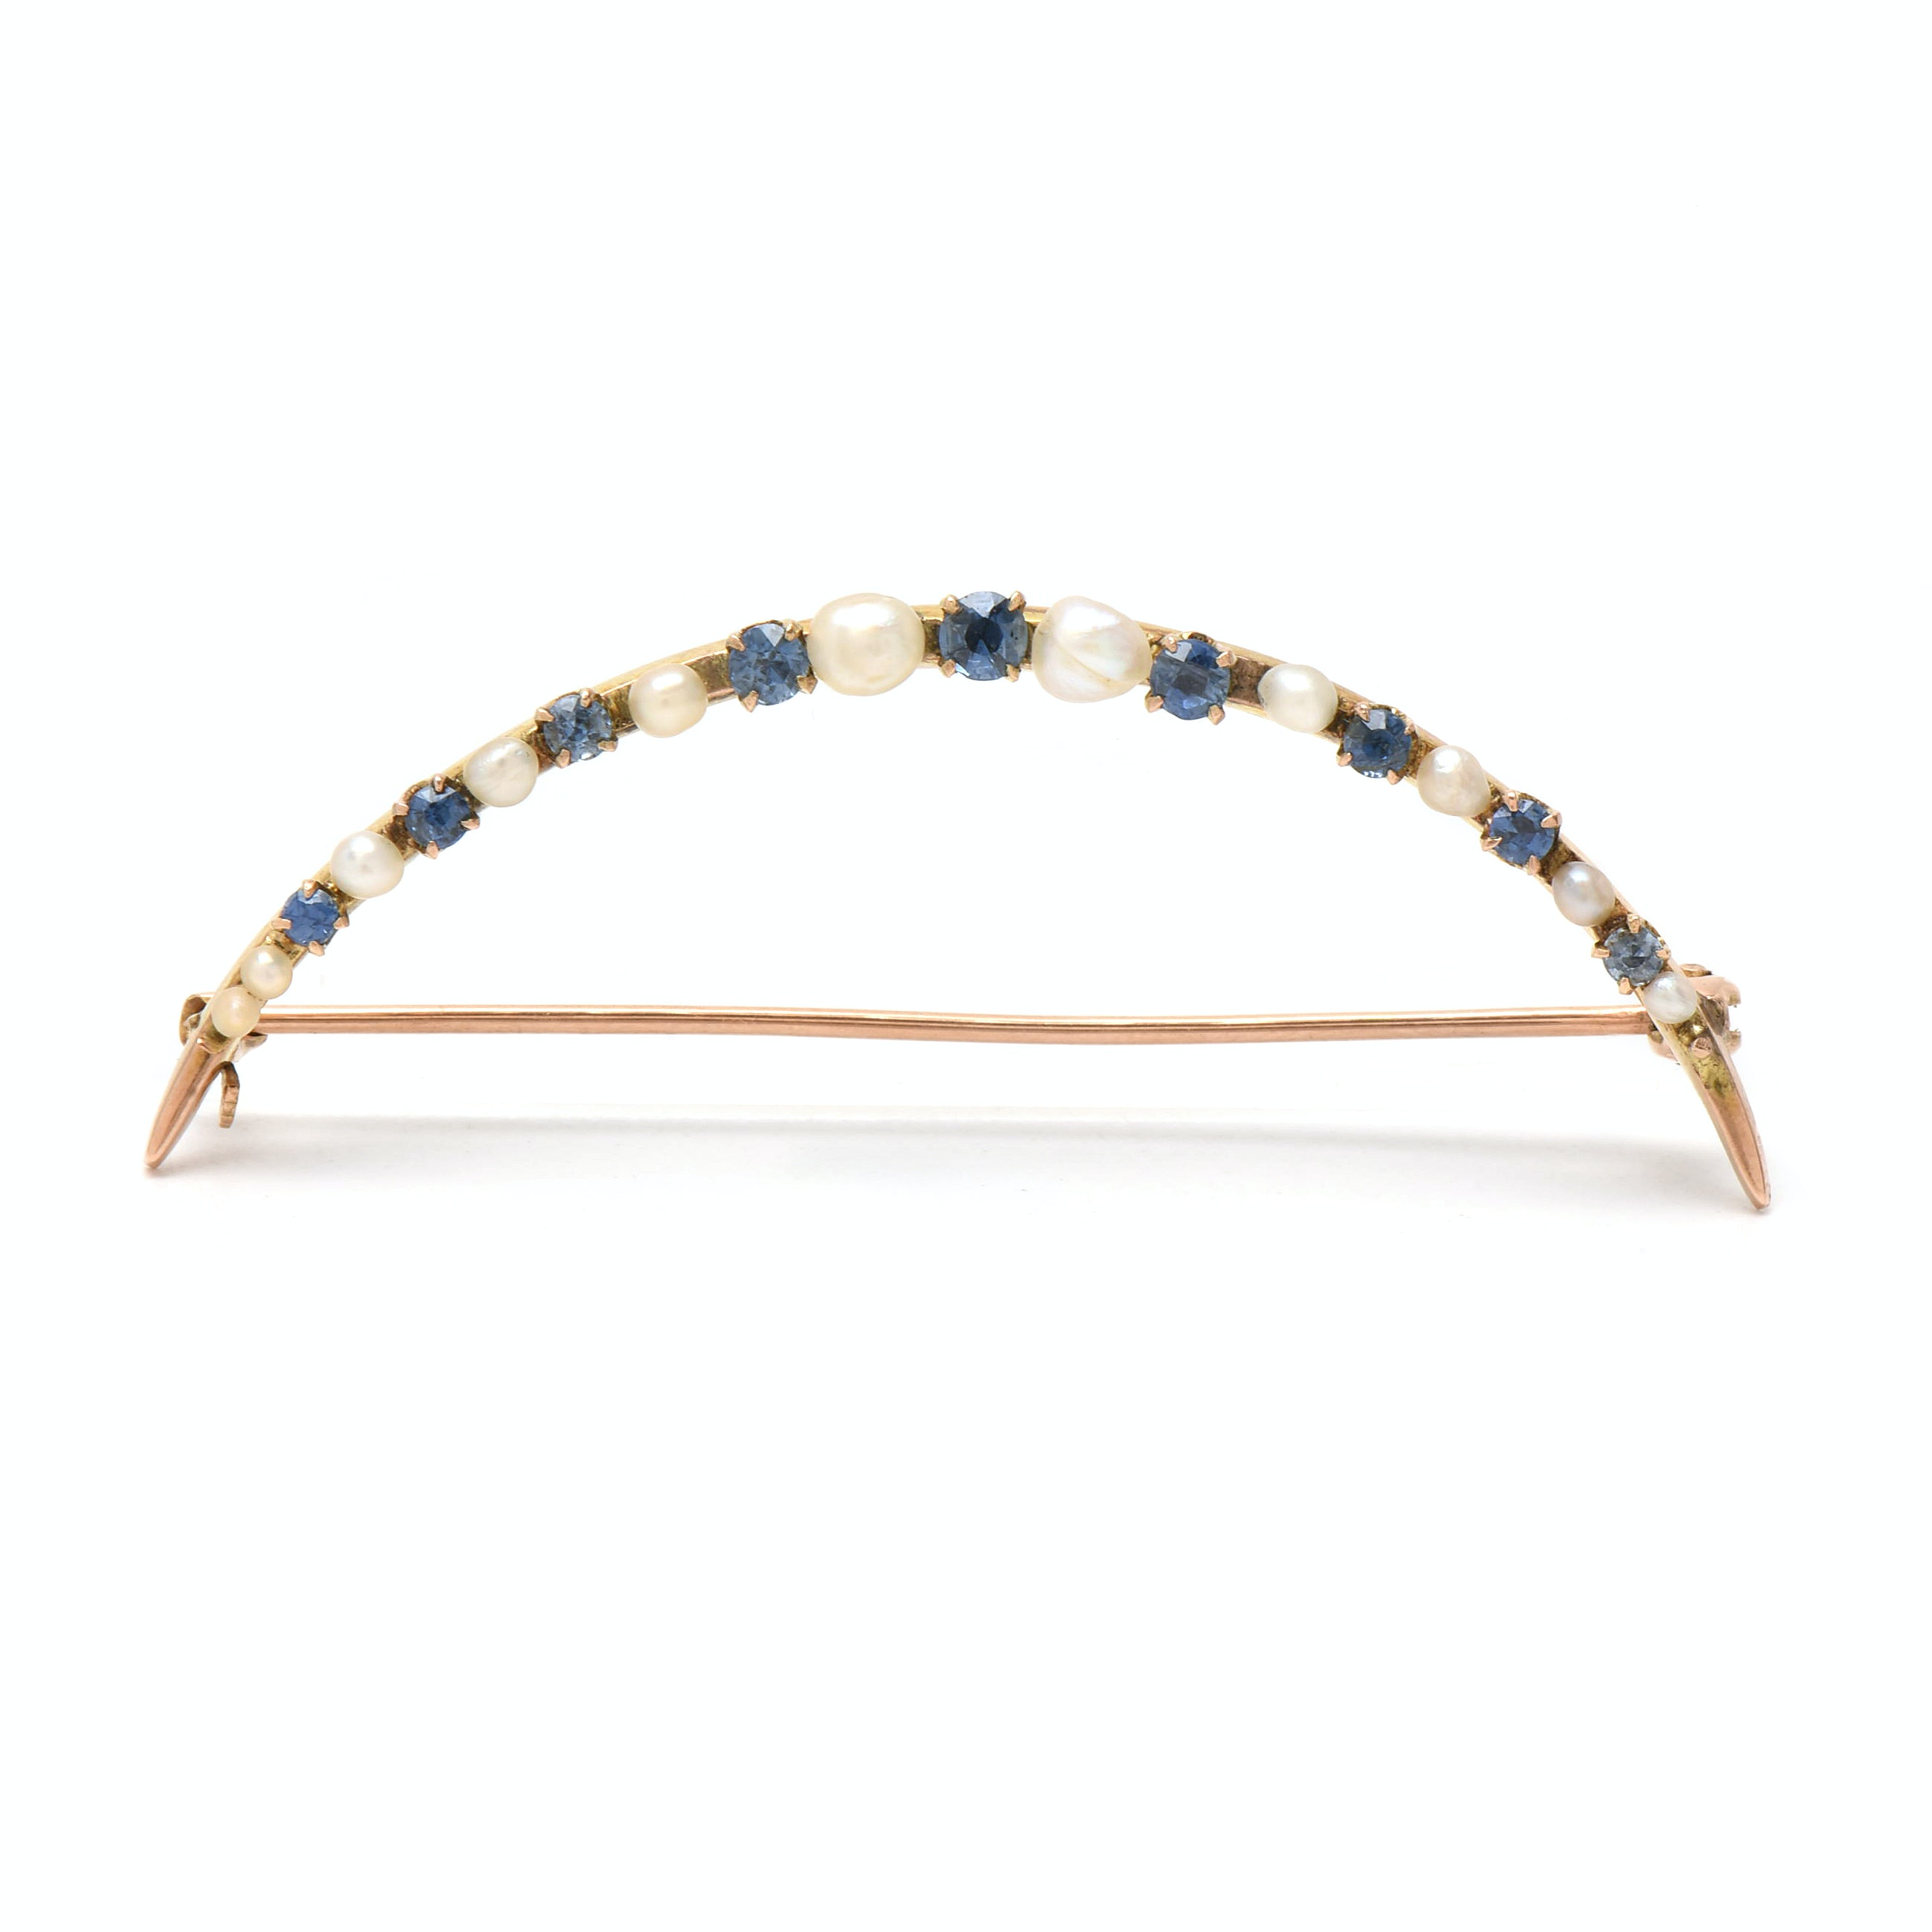 Vintage 10K Yellow Gold Blue Sapphire and Seed Pearl Crescent Moon Brooch